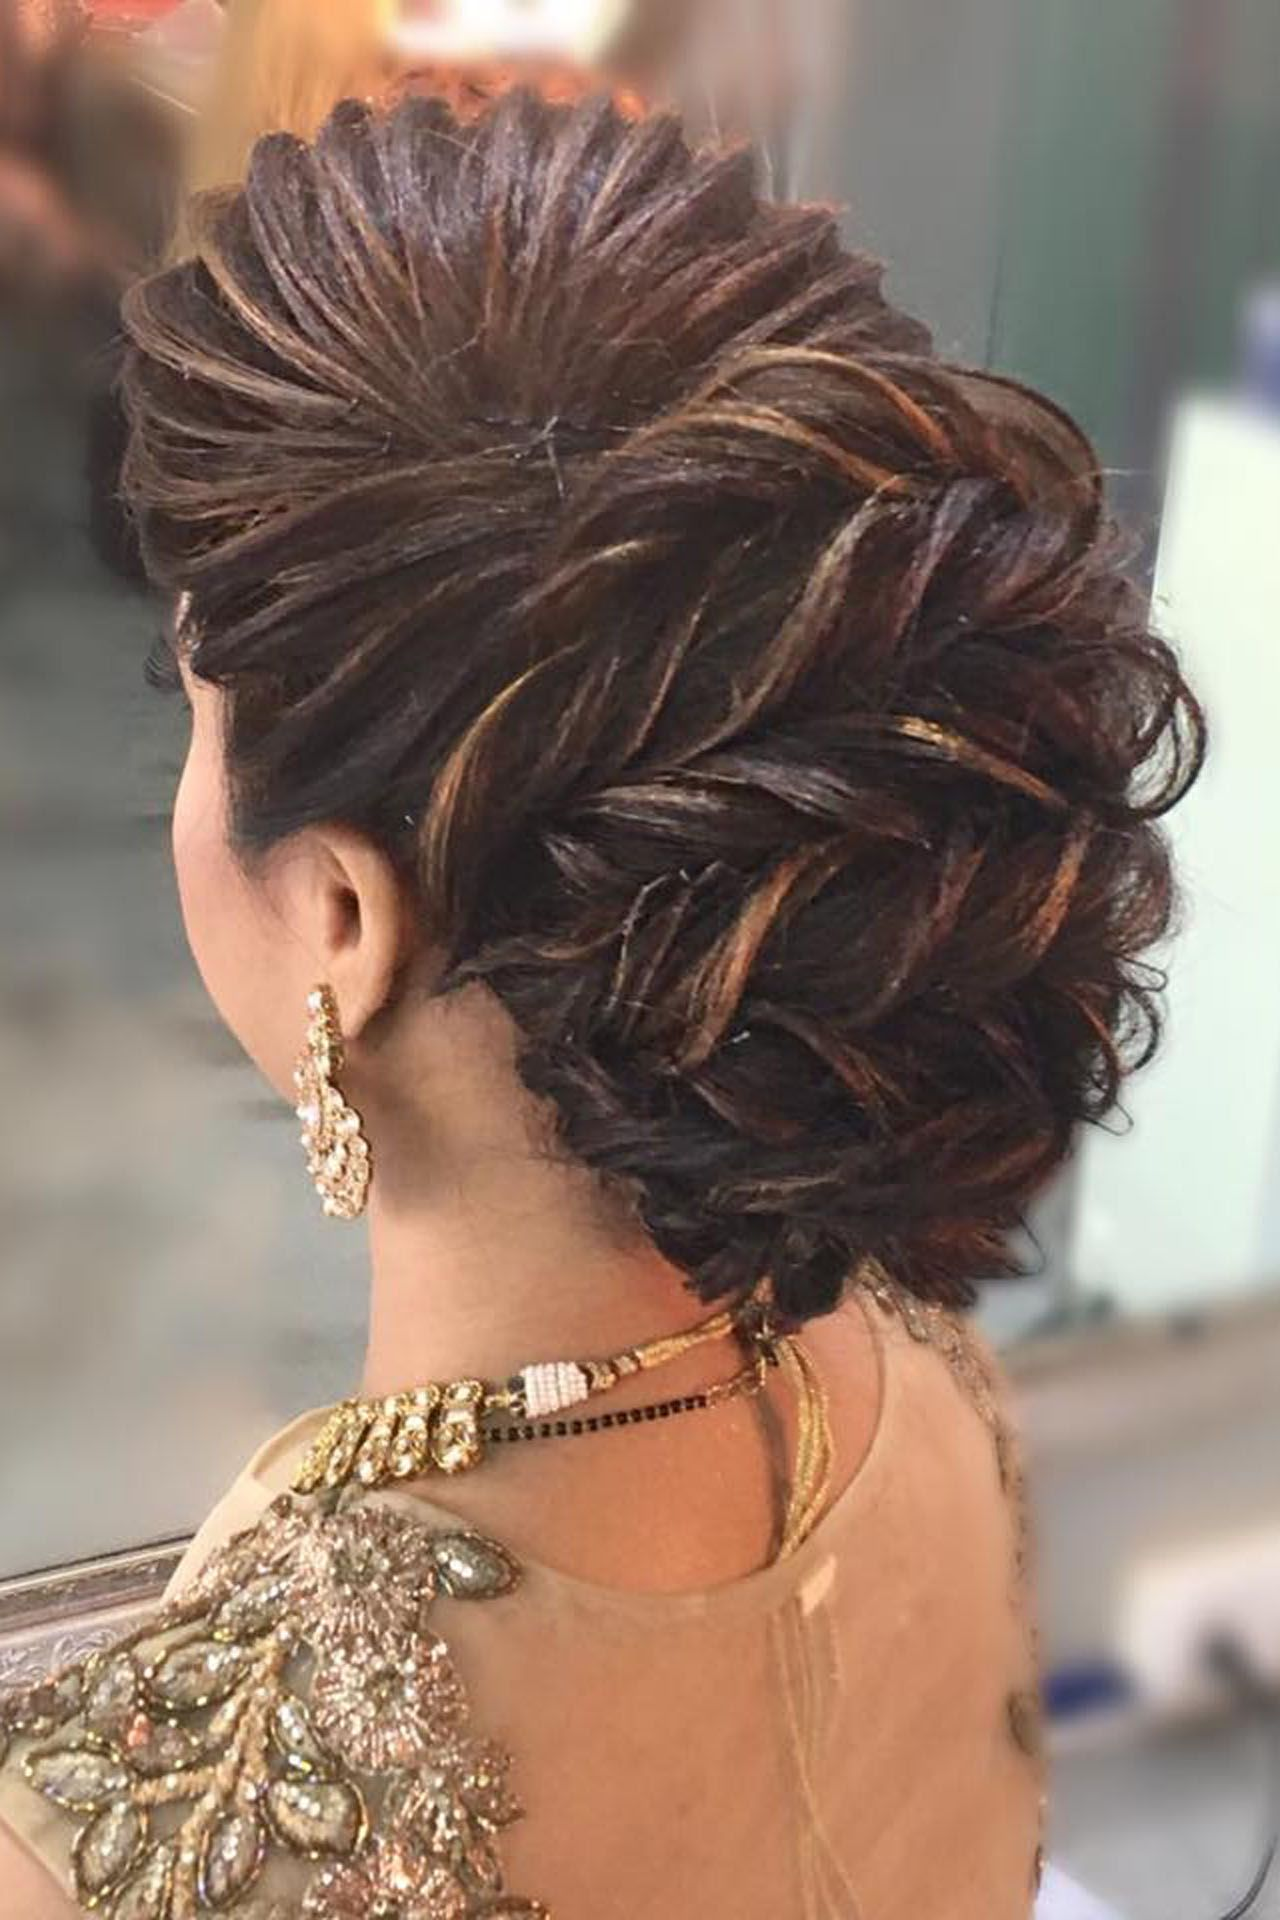 Pin By Jagruti Vaghasiya On Hair Styling Hair Styles Open Hairstyles Hairdo